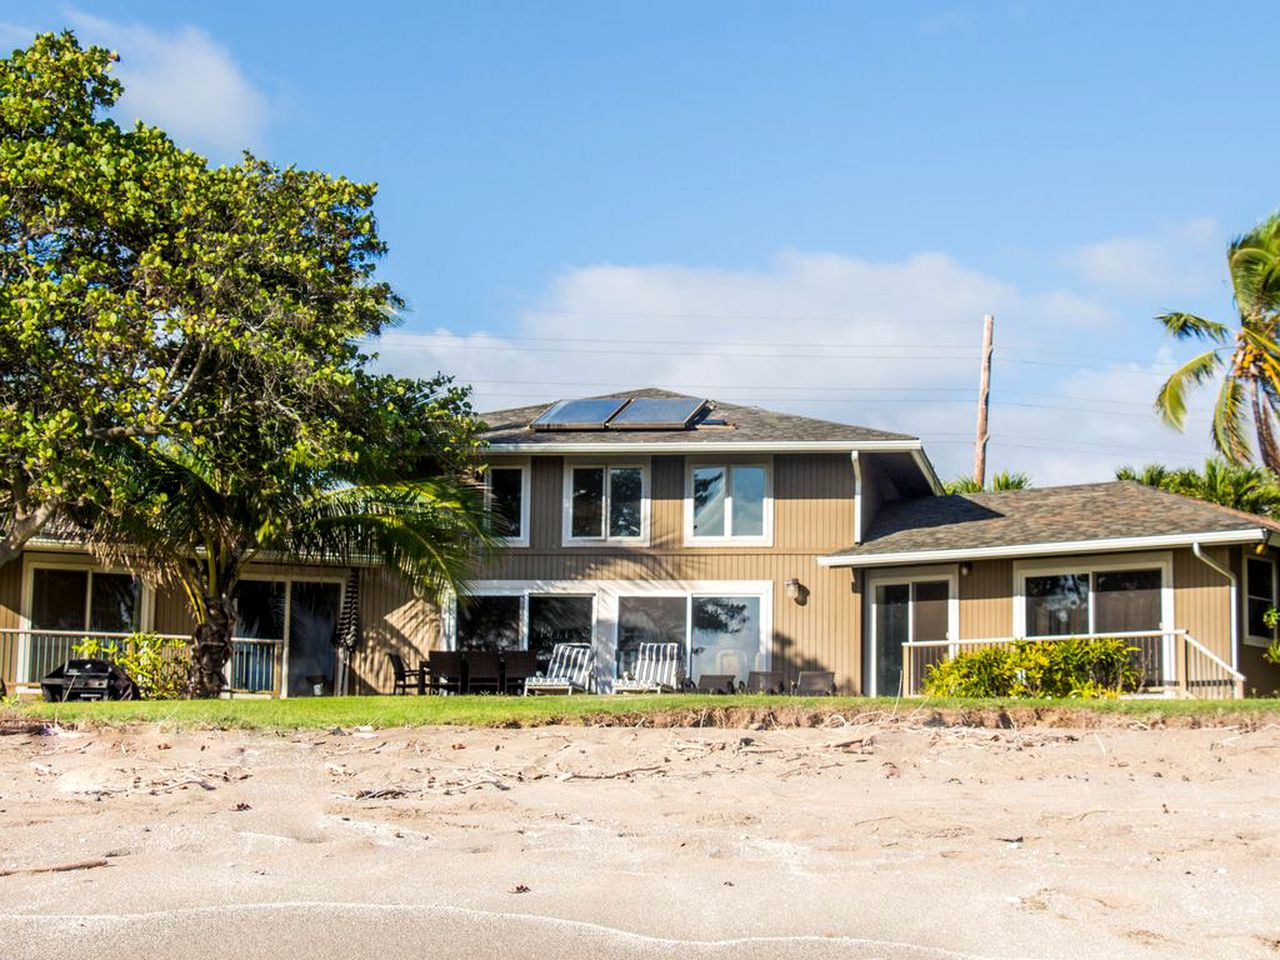 View from the beach of a Kekaha beach house with a tree and grass leading to the sand.